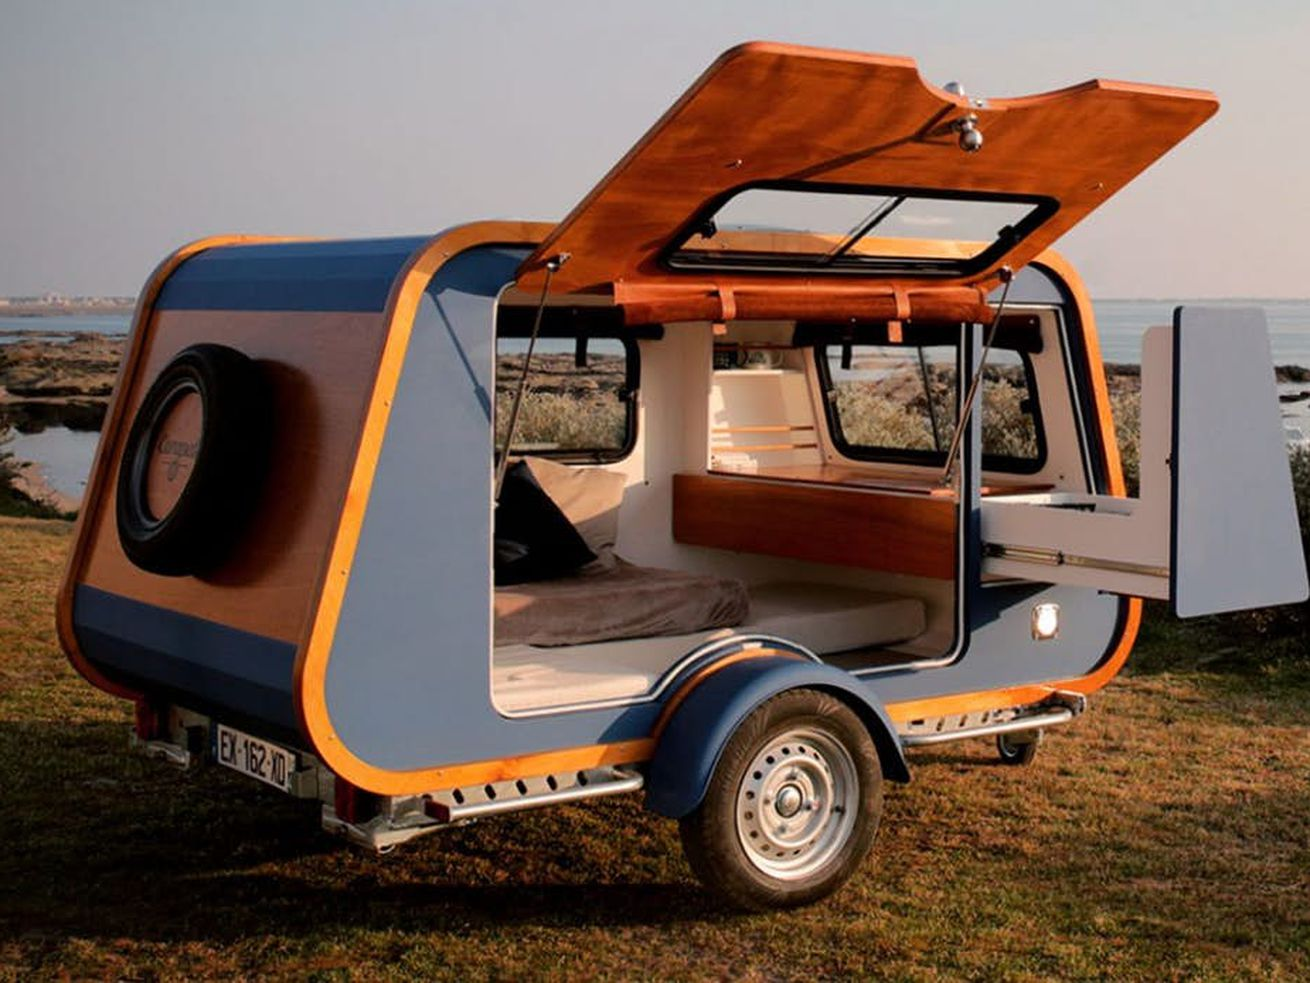 Yacht-like camper rethinks the teardrop trailer